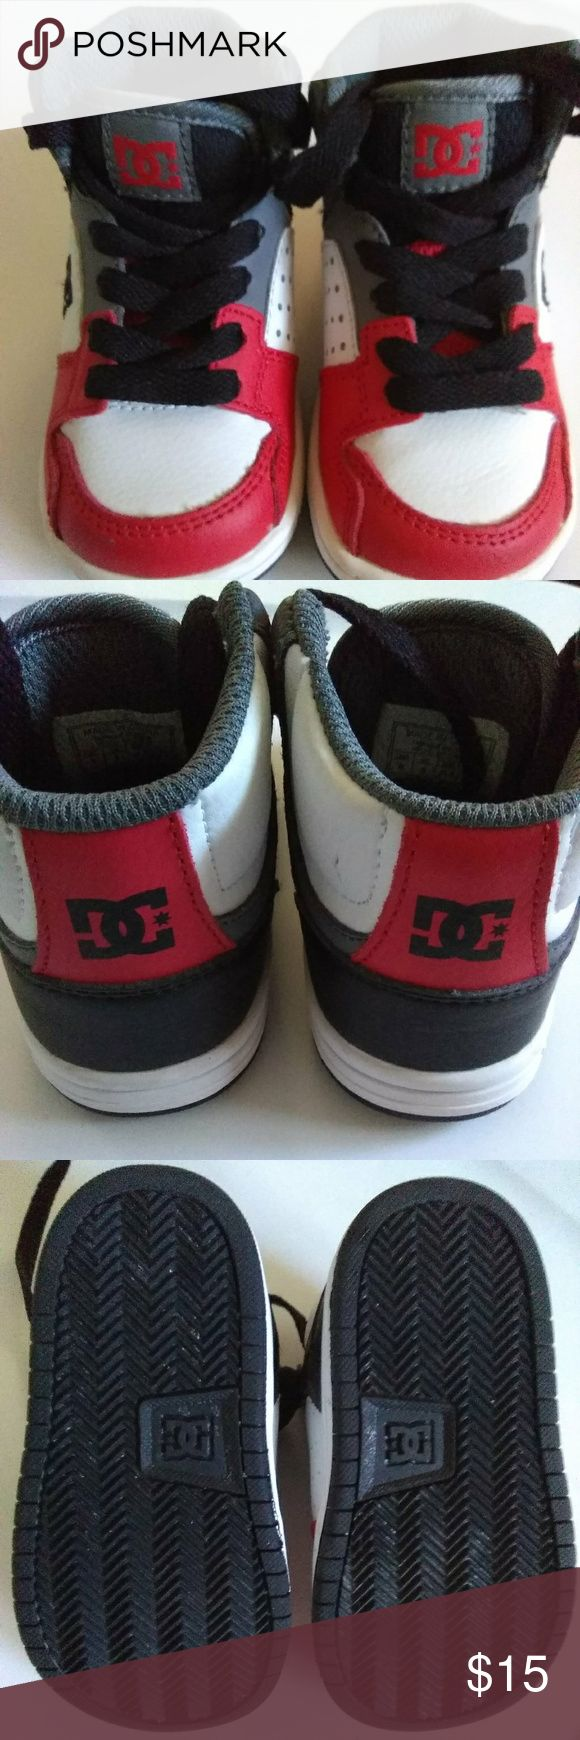 DC Sneakers Never used DC Shoes Sneakers